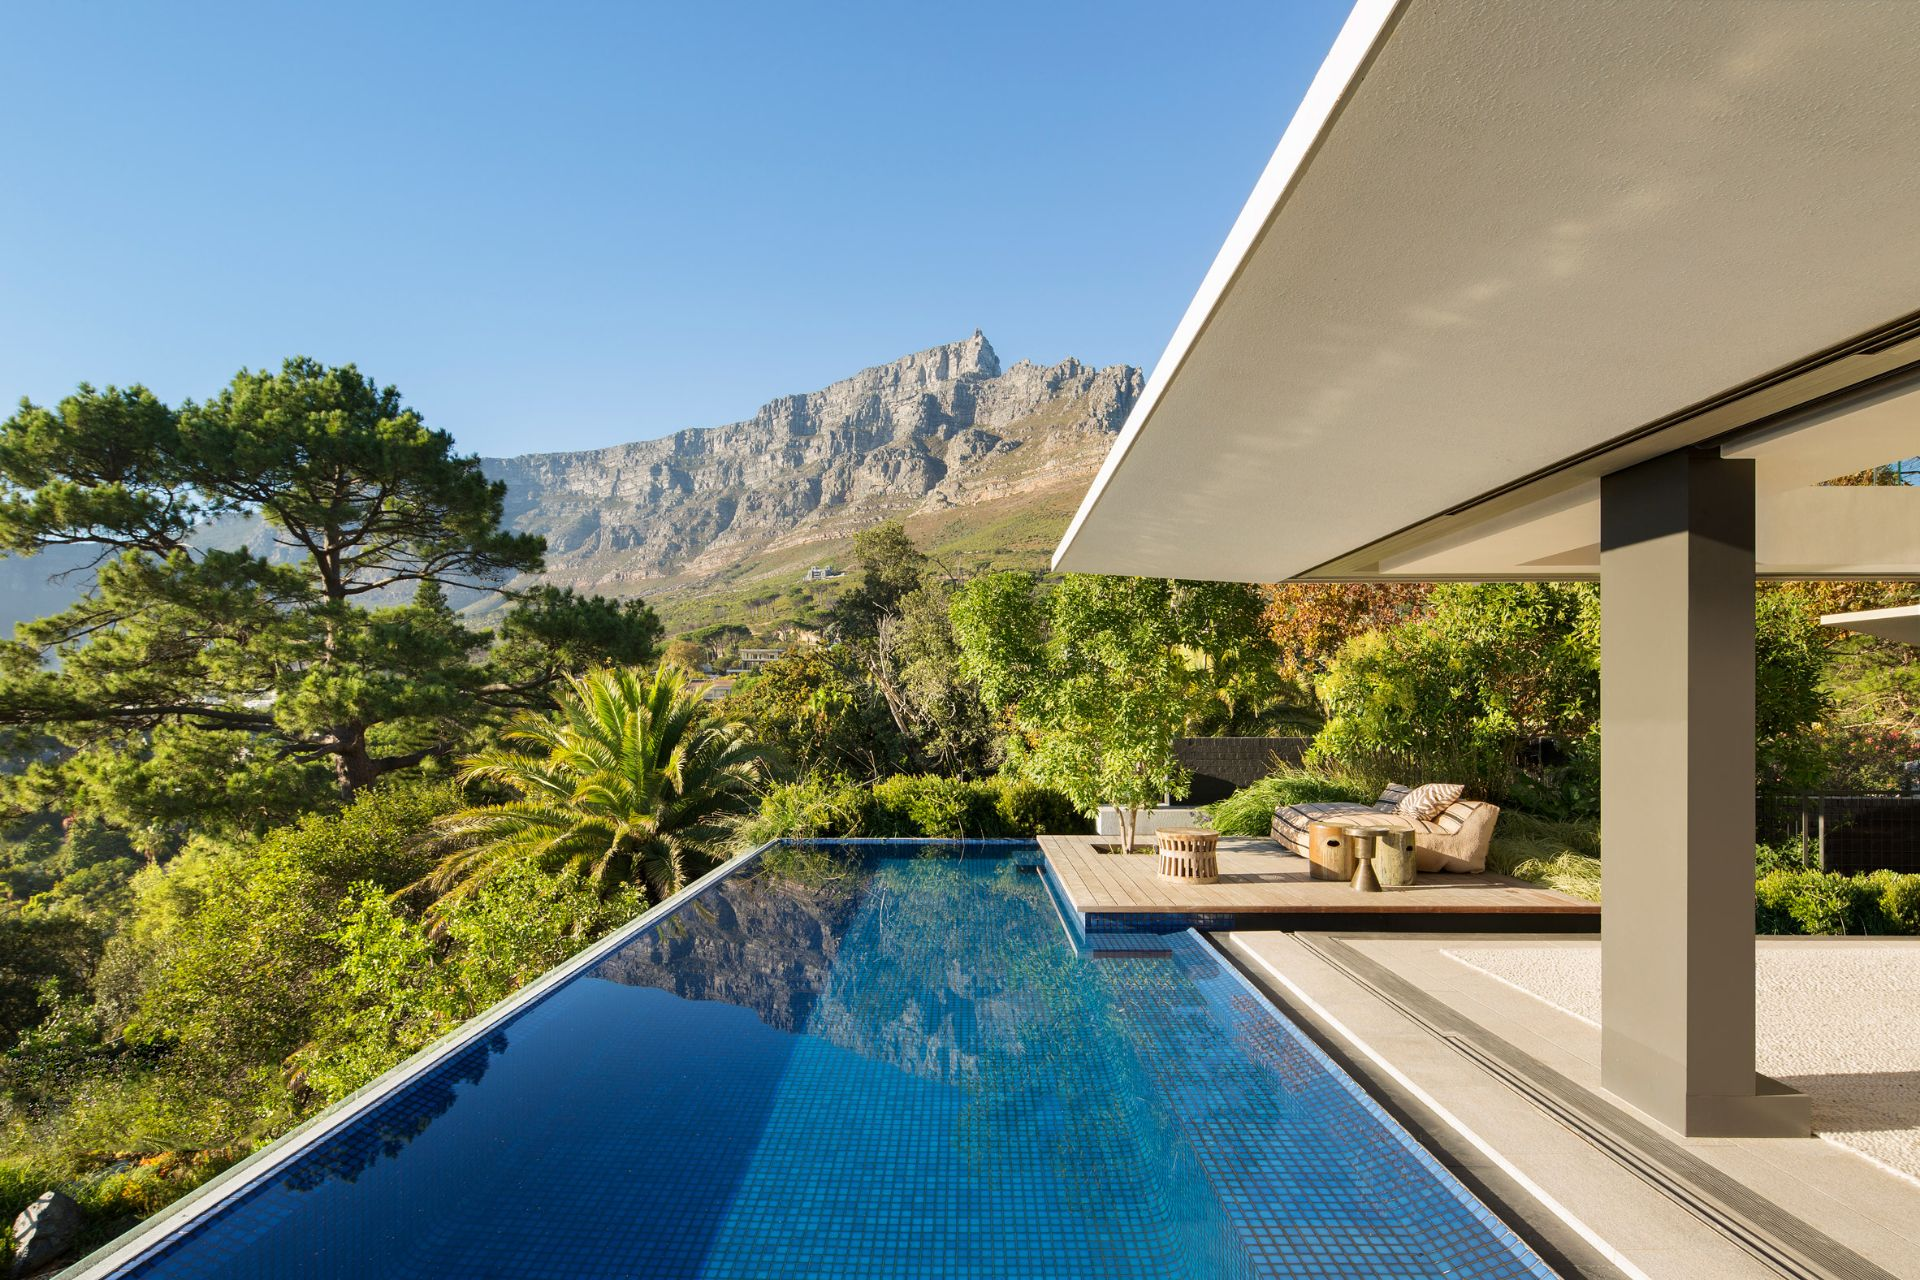 Architecture And Housing In South Africa